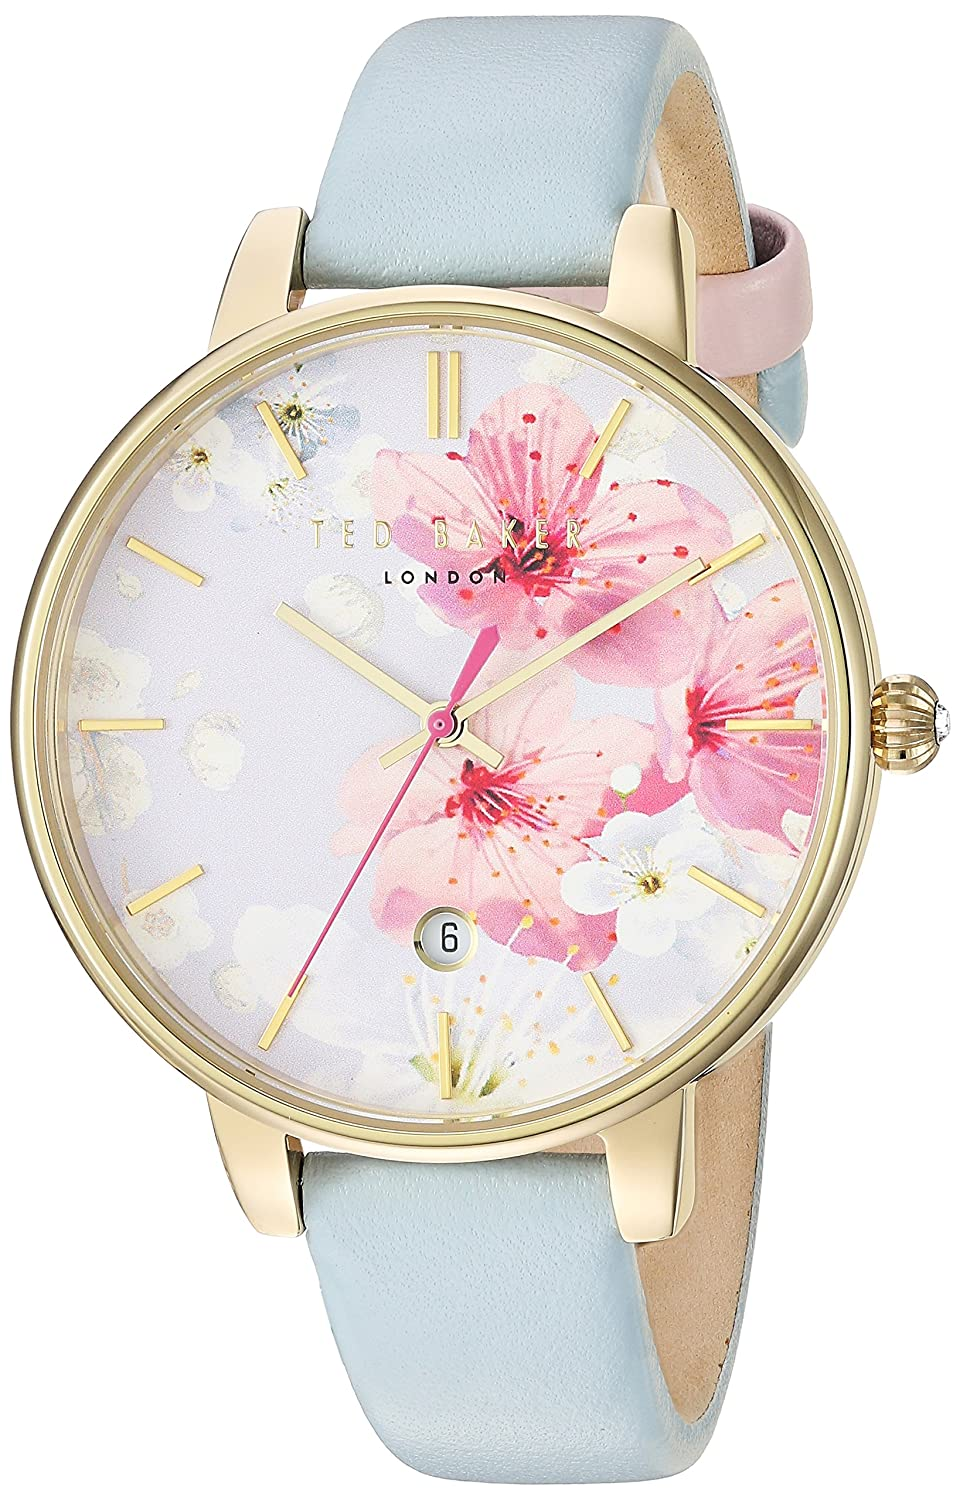 TED BAKER- LADIES KATE GOLD PLATED PALE BLUE STRAP WATCH